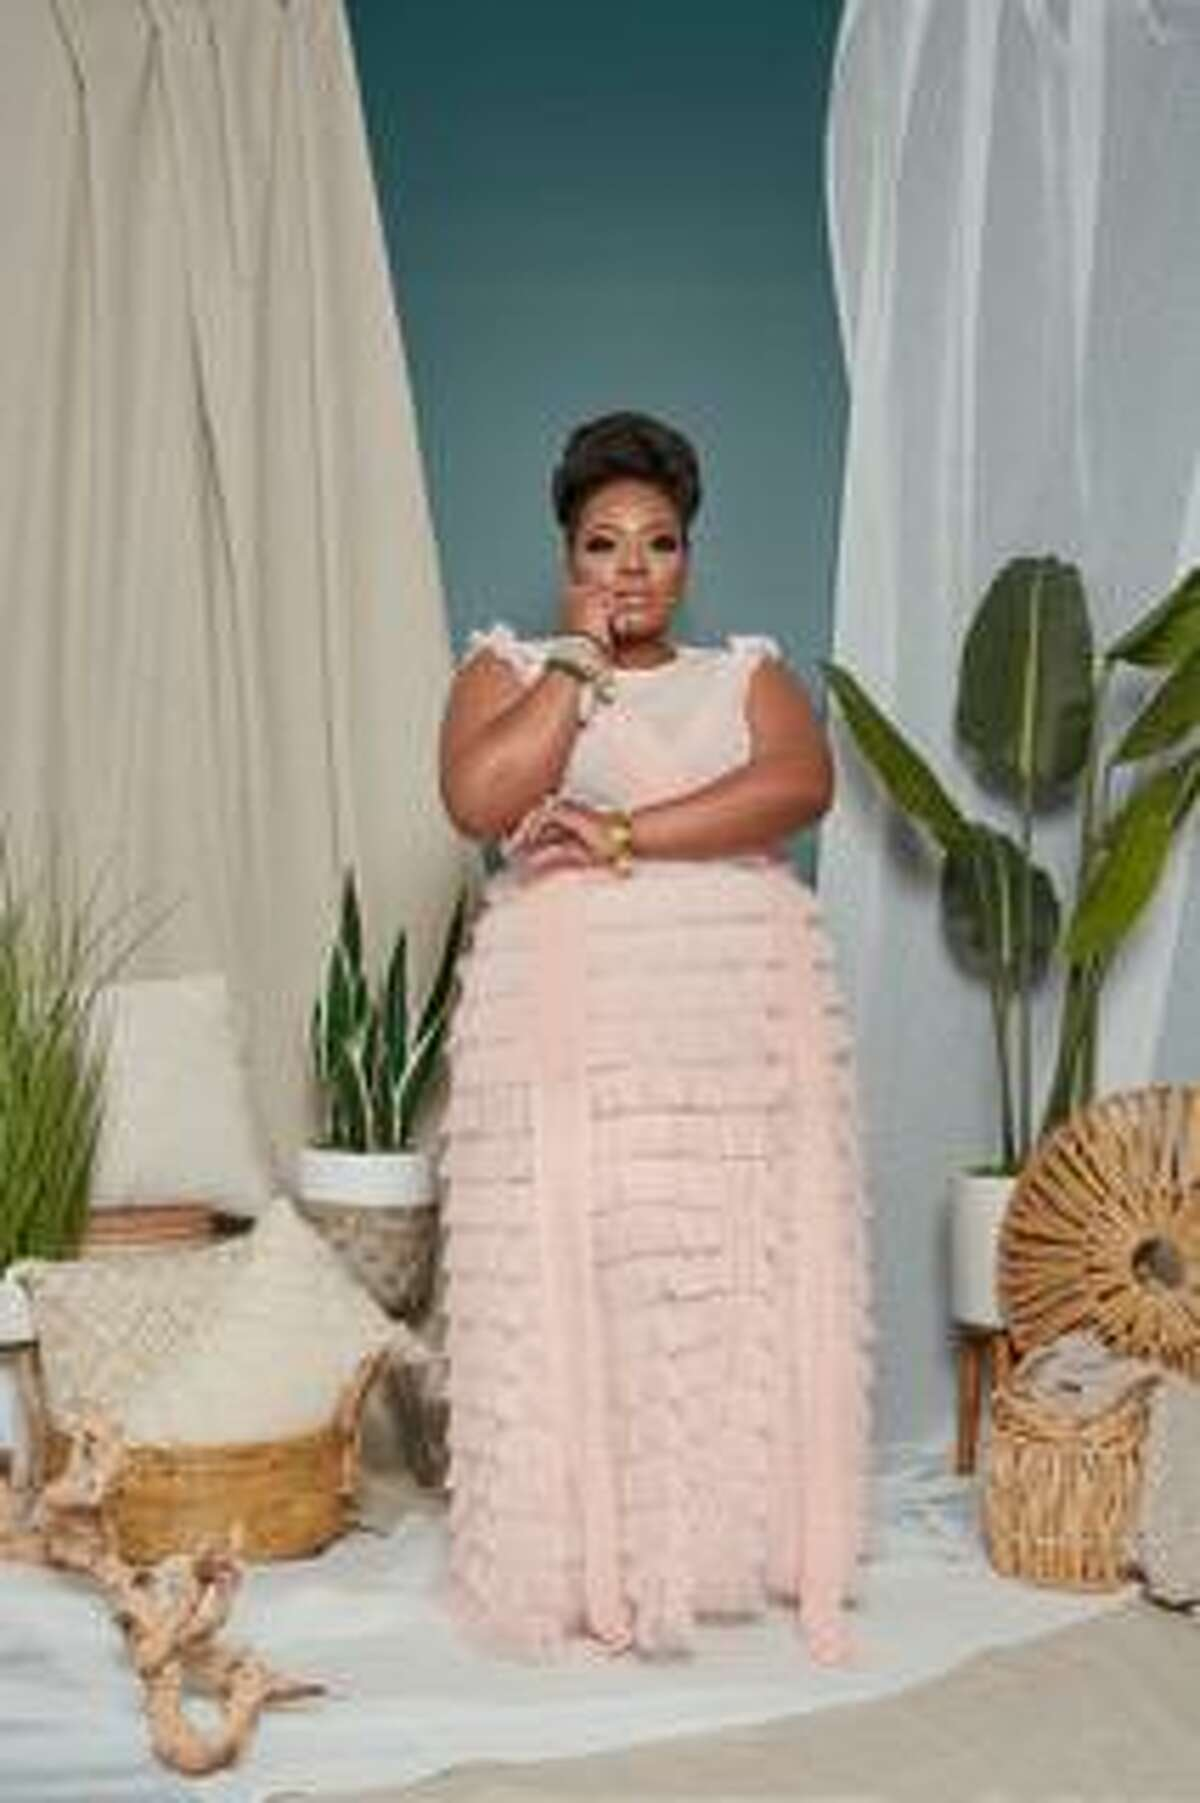 Martha Elmore Berry is the owner of Glam House, a photography studio in Humble, and the online store I'MarE Boutique which markets toward plus-size women looking for unique finds.